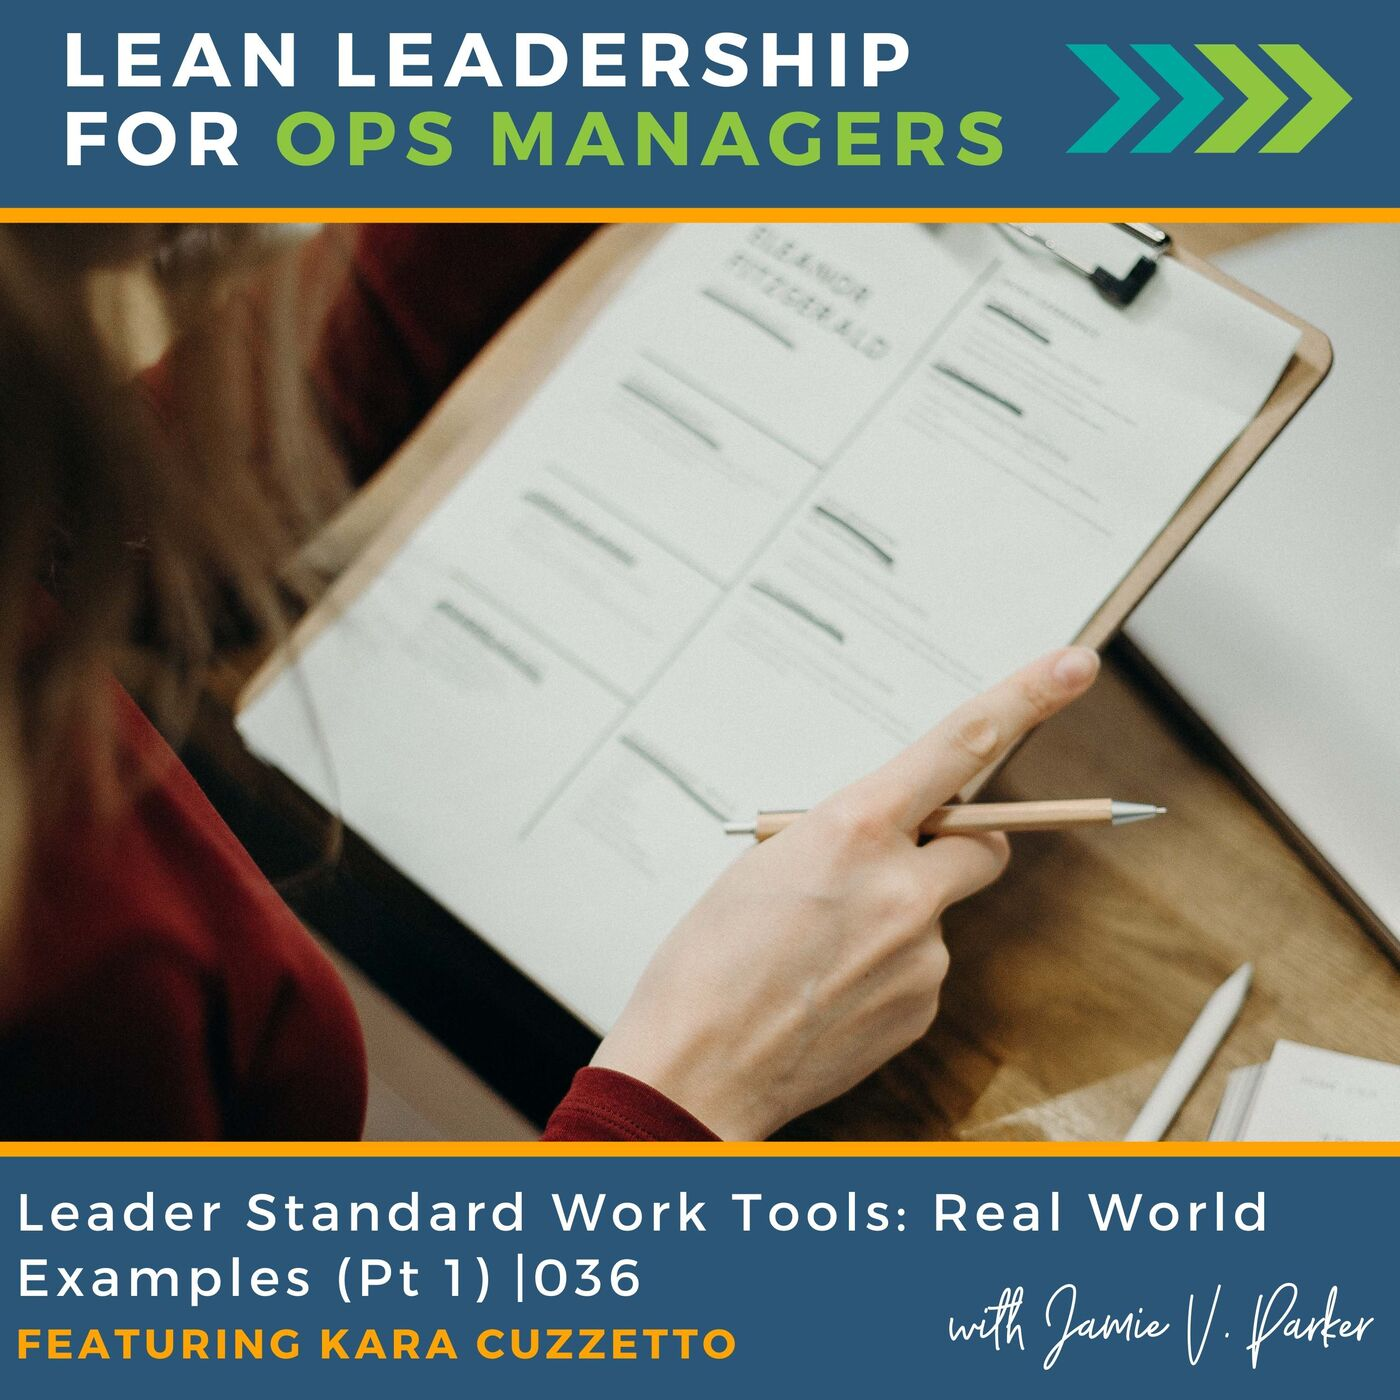 Leader Standard Work Tools: Real World Examples (Part 1) - Featuring Kara Cuzzetto   036